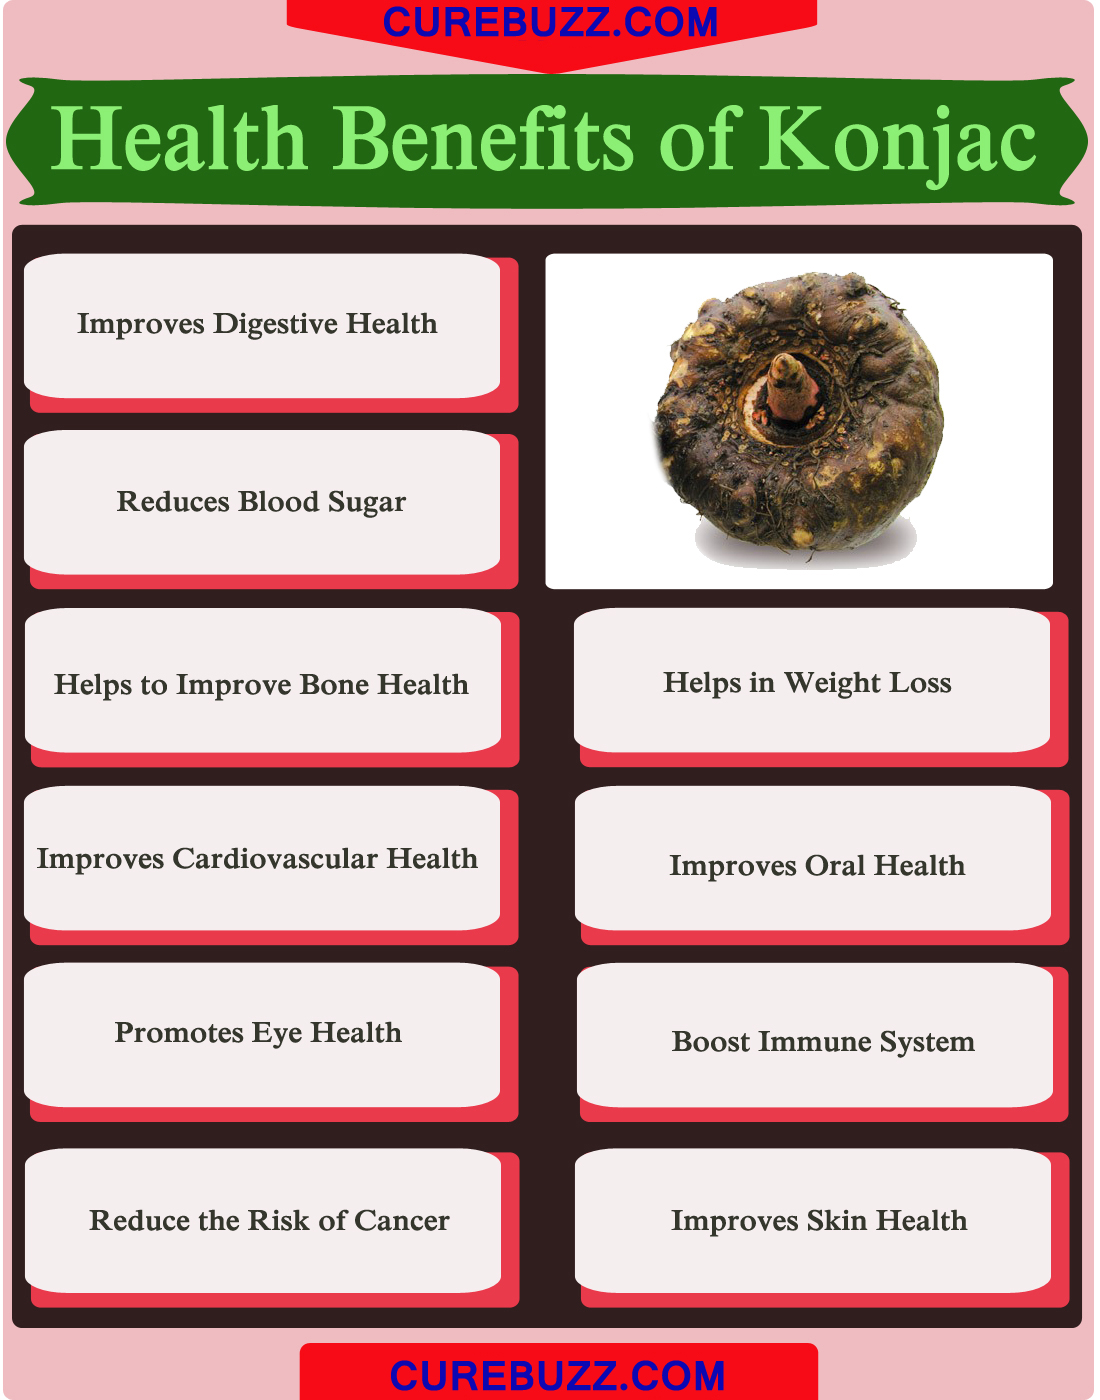 Health Benefits of Konjac